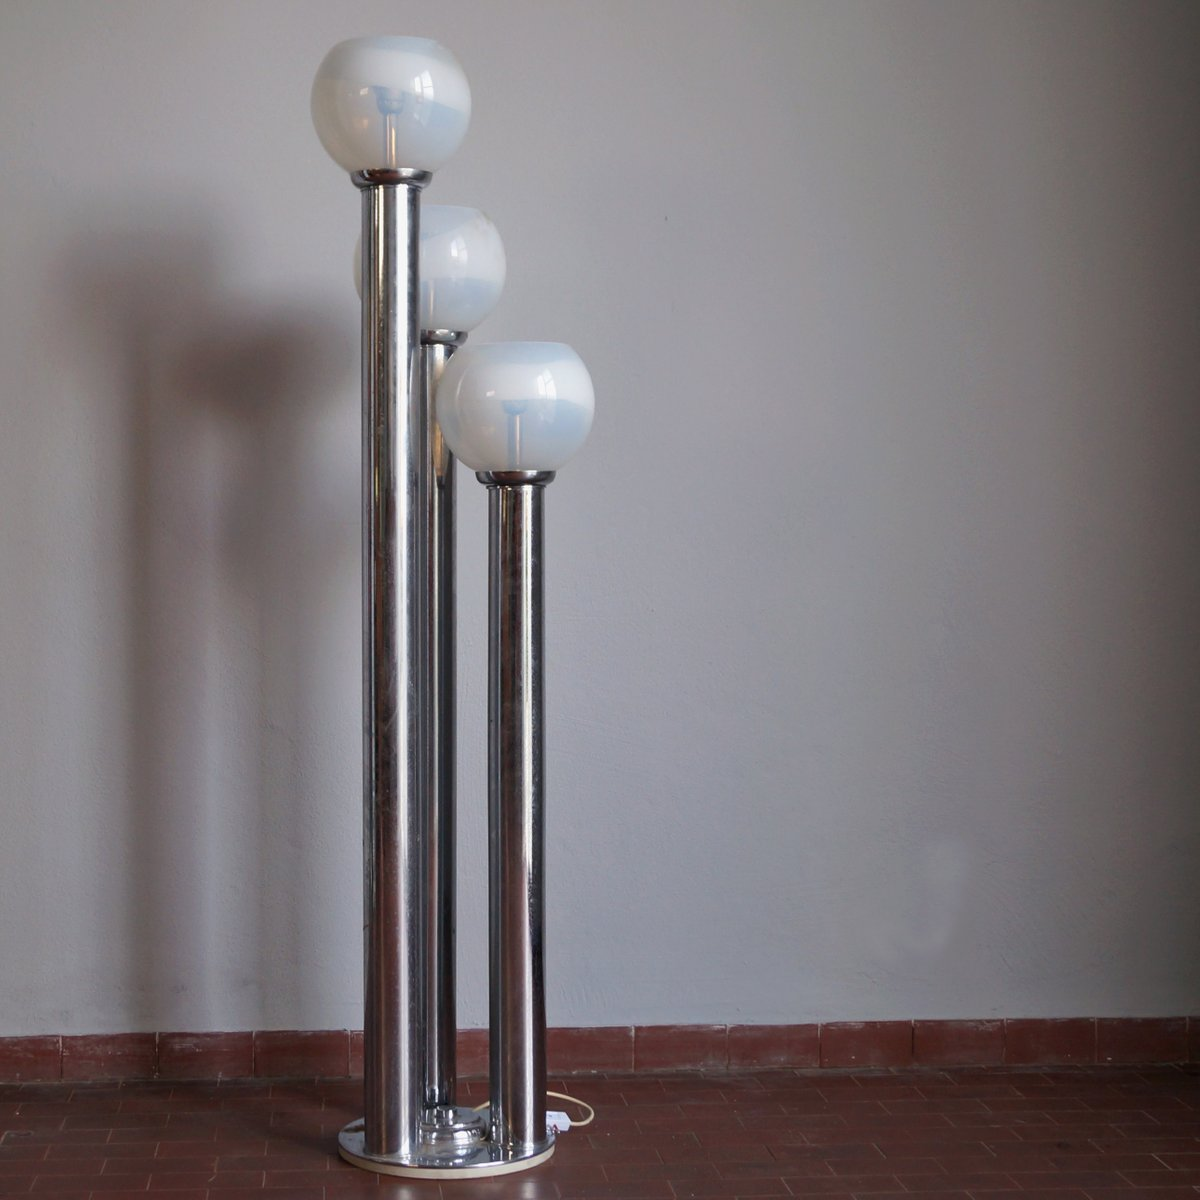 Chromed three light floor lamp from mazzega 1970s for sale at pamono for 1970s floor lamps